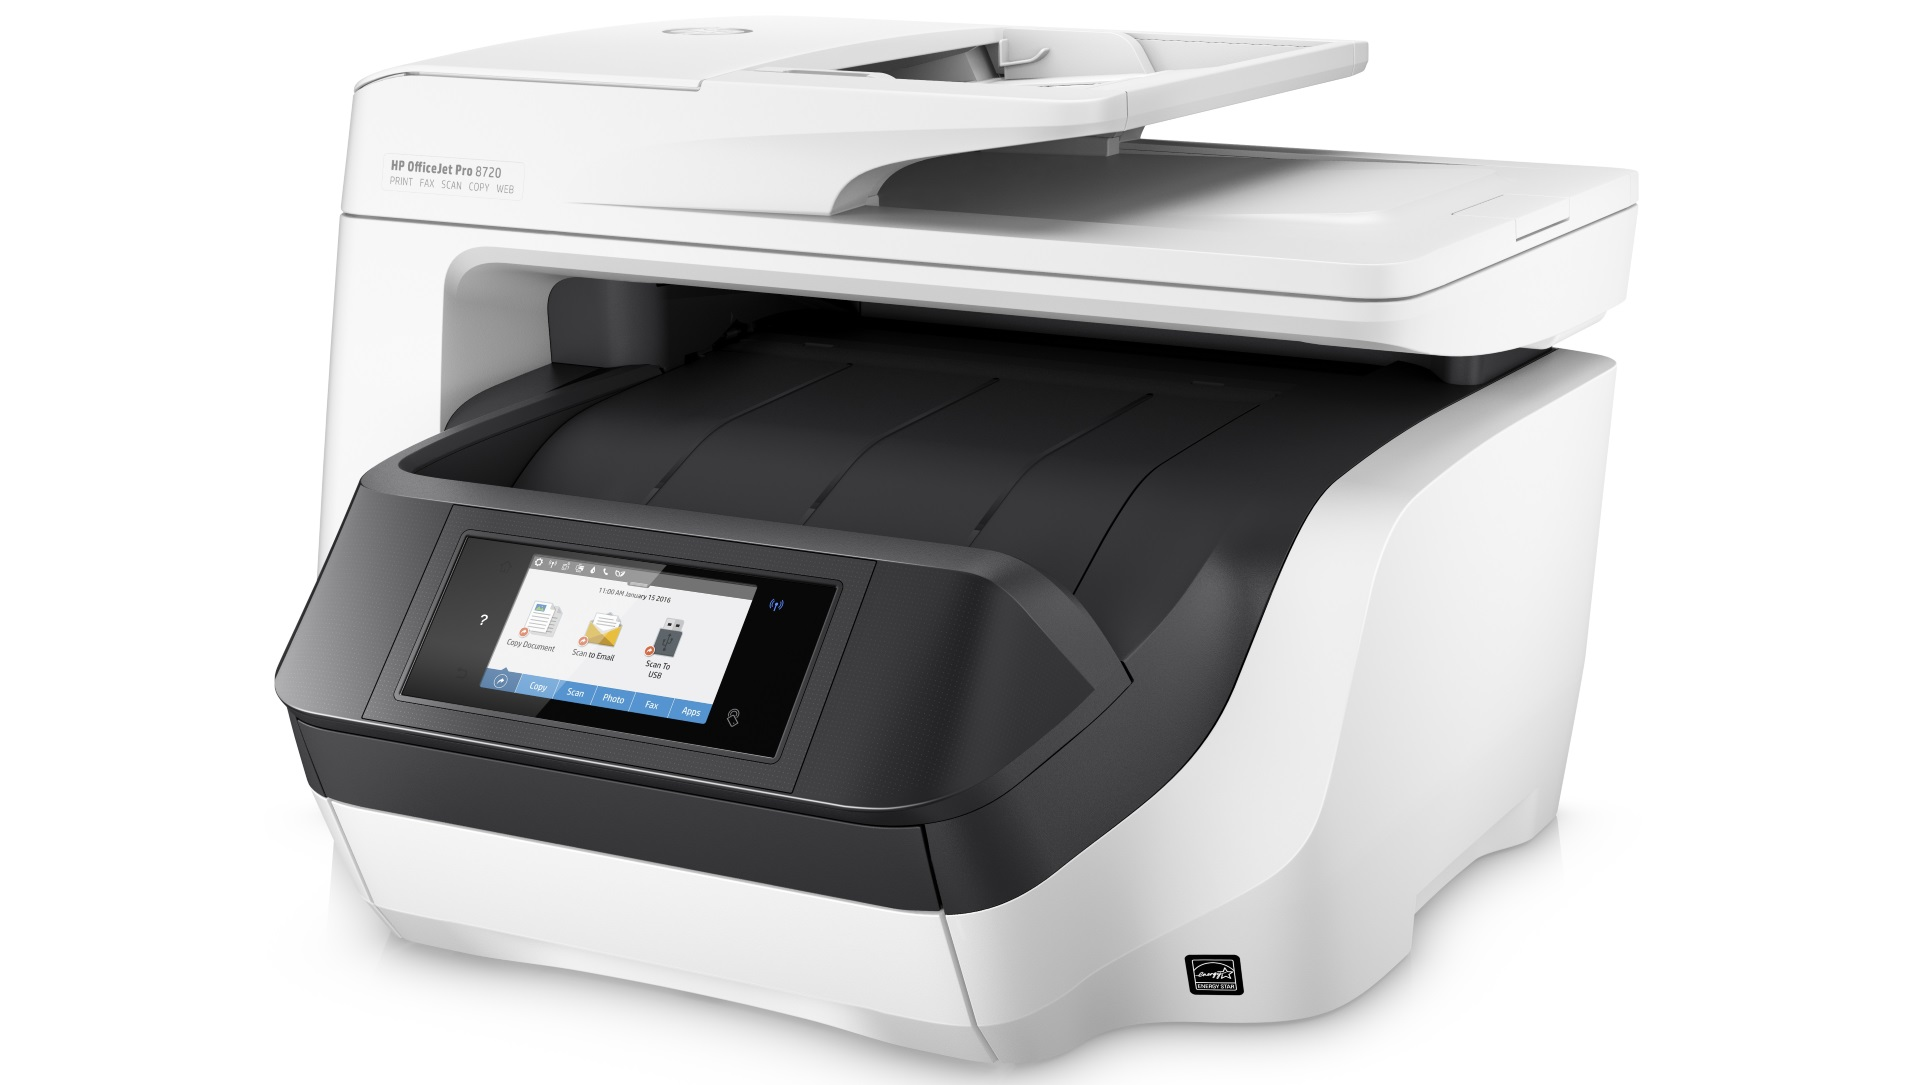 Hp officejet pro 8720 review expert reviews for Best home office multifunction printers